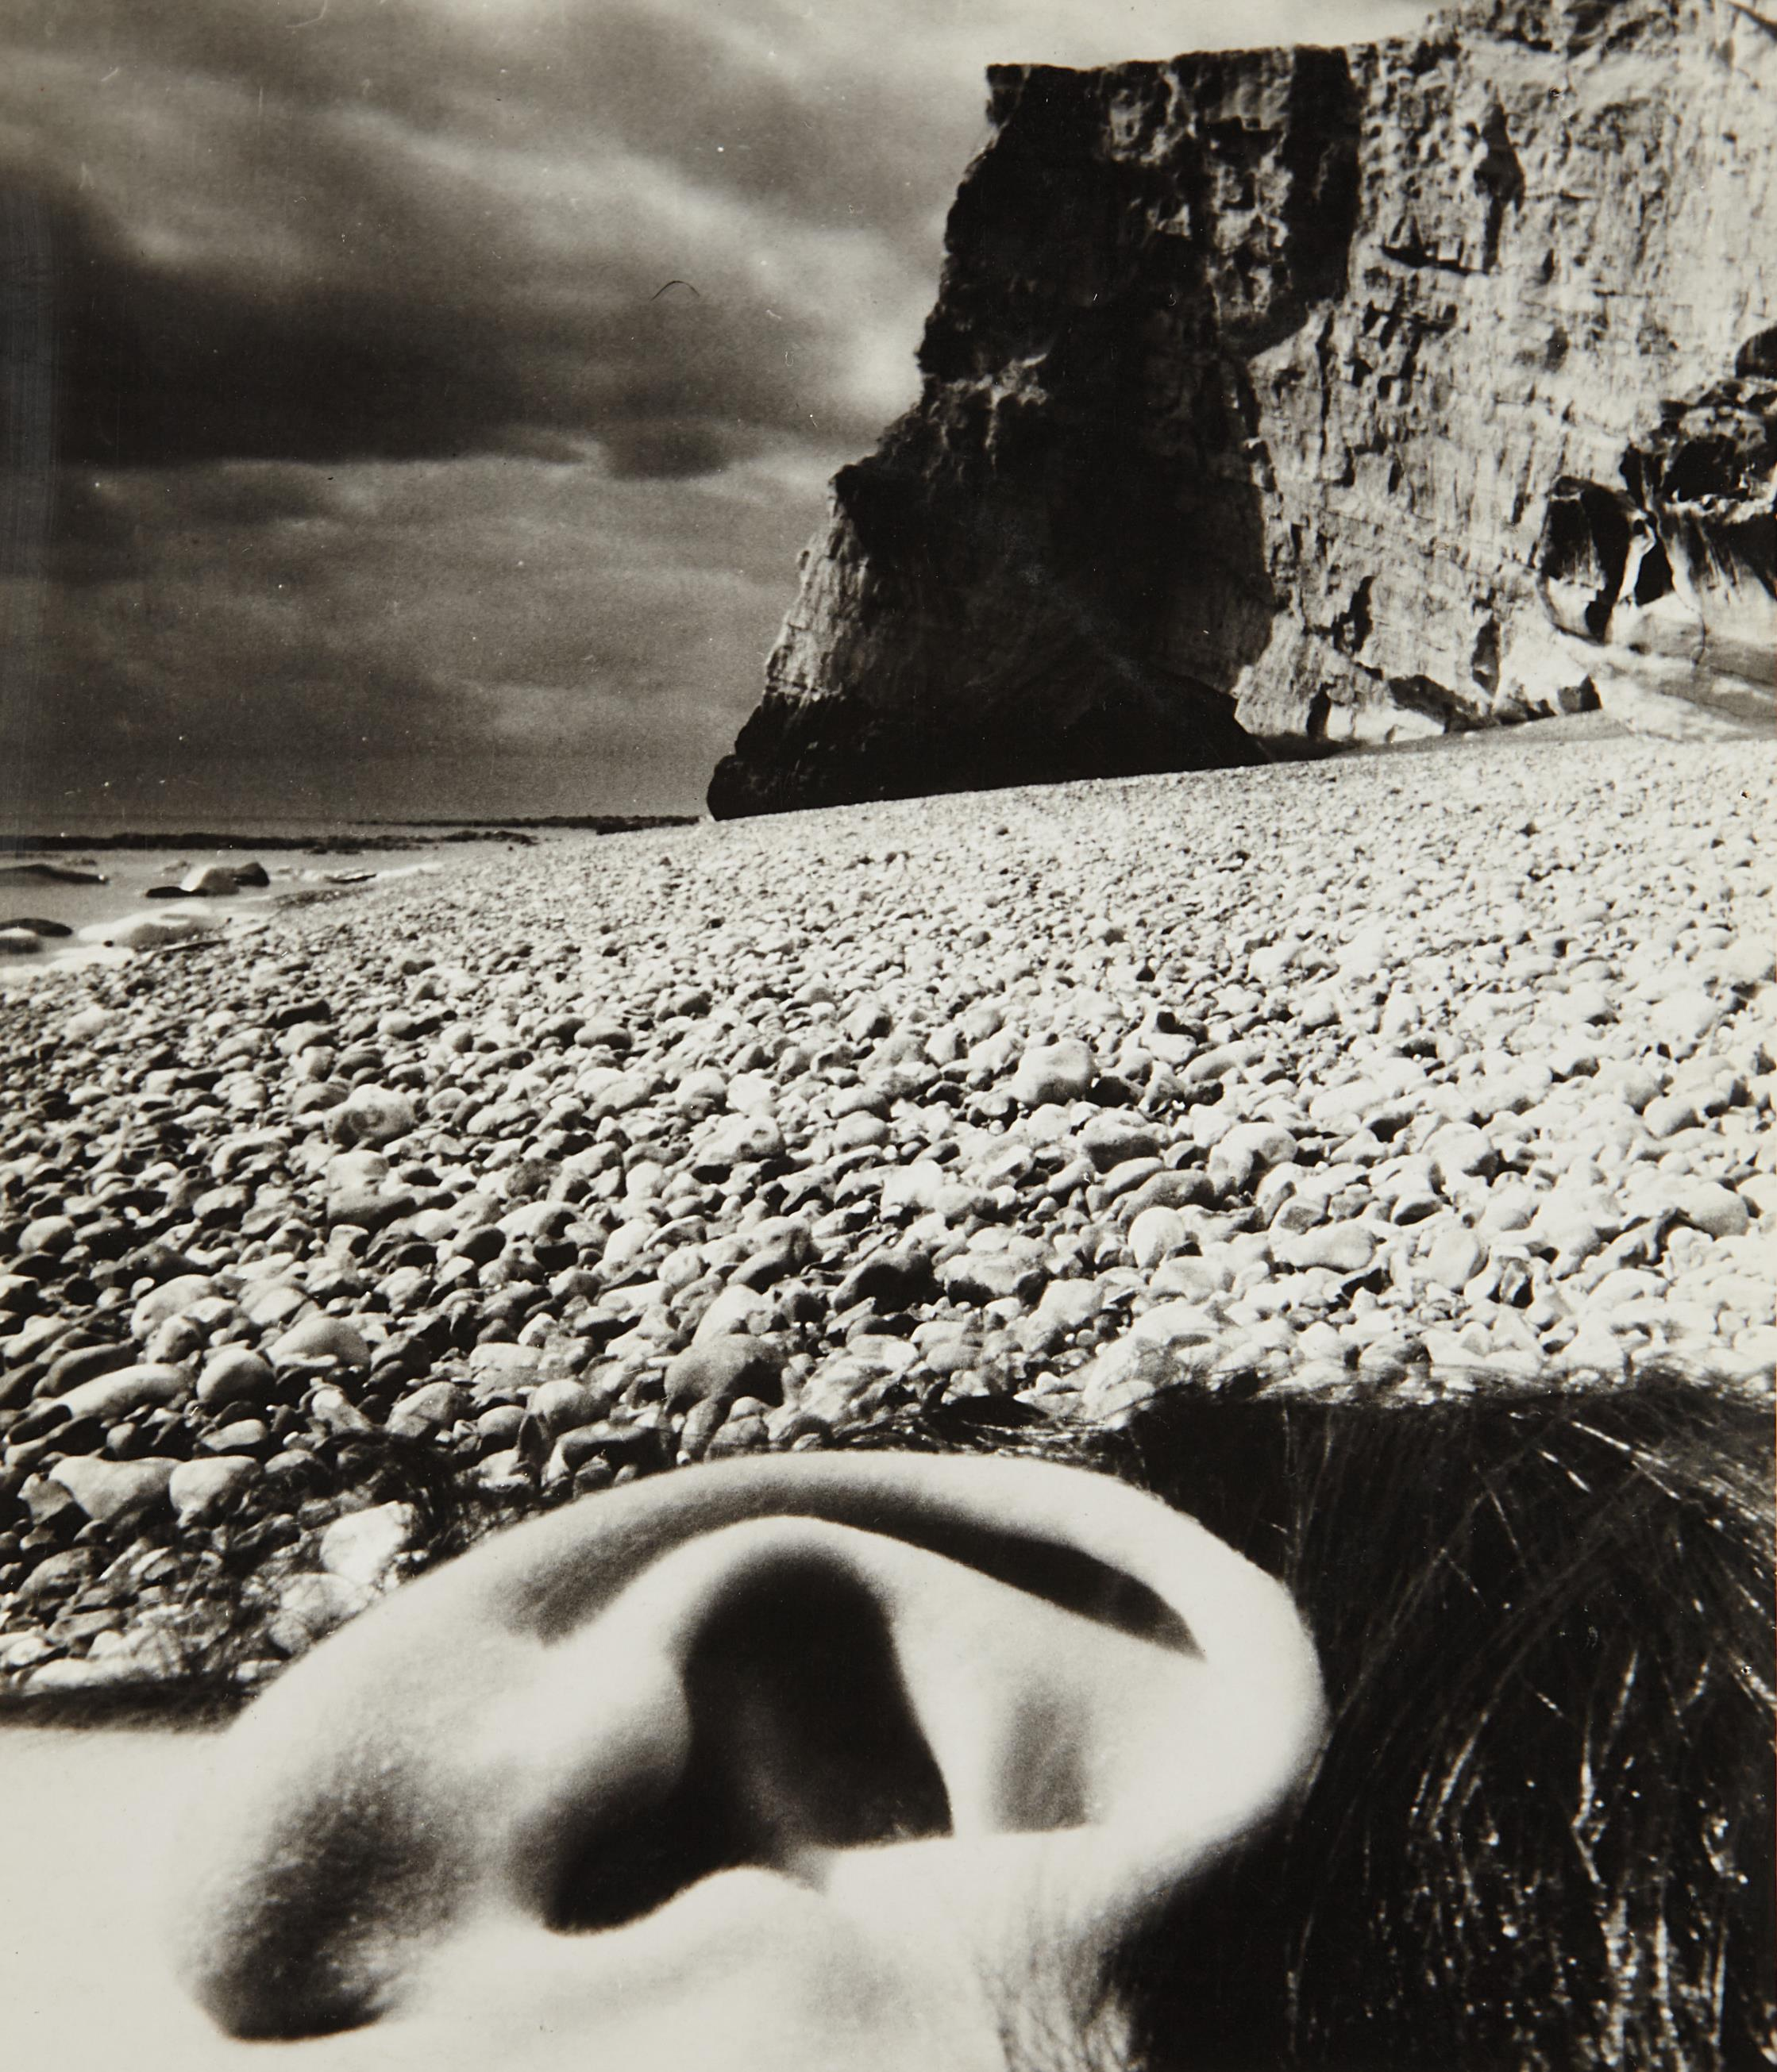 Bill Armstrong: Partial Appearances LENSCRATCH Bill brandt night photography